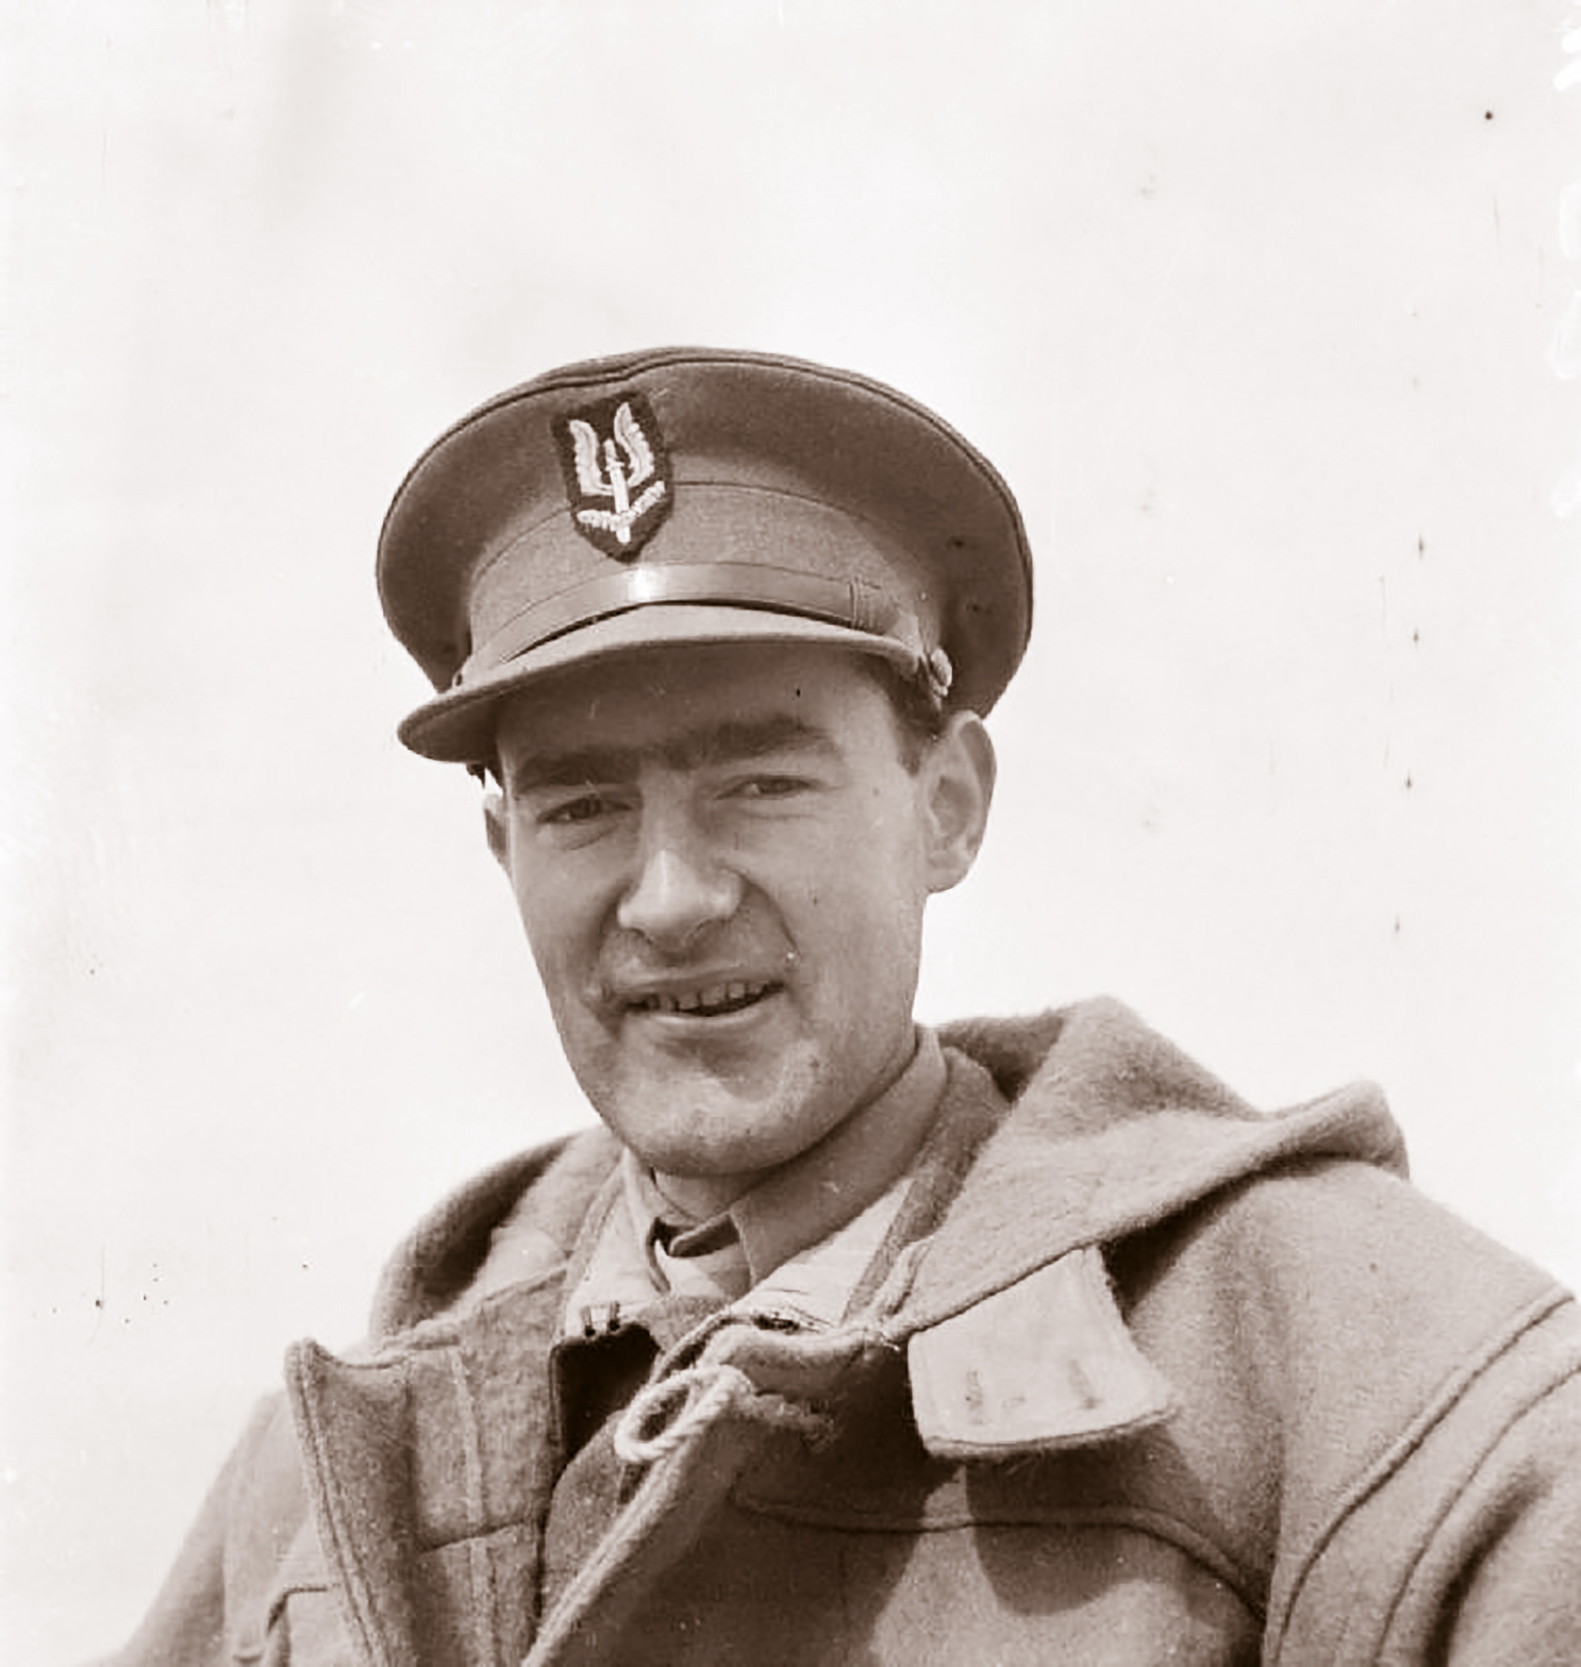 Sir David Stirling - Known as the Phantom Major, Colonel David Stirling was a pioneer of the British Special Forces. He founded the Special Air Services (SAS) during WWI to build small teams and utilise stealth and guile to undertake acts of sabotage behind enemy lines. His motto 'Who Dare Wins' still echoes today.